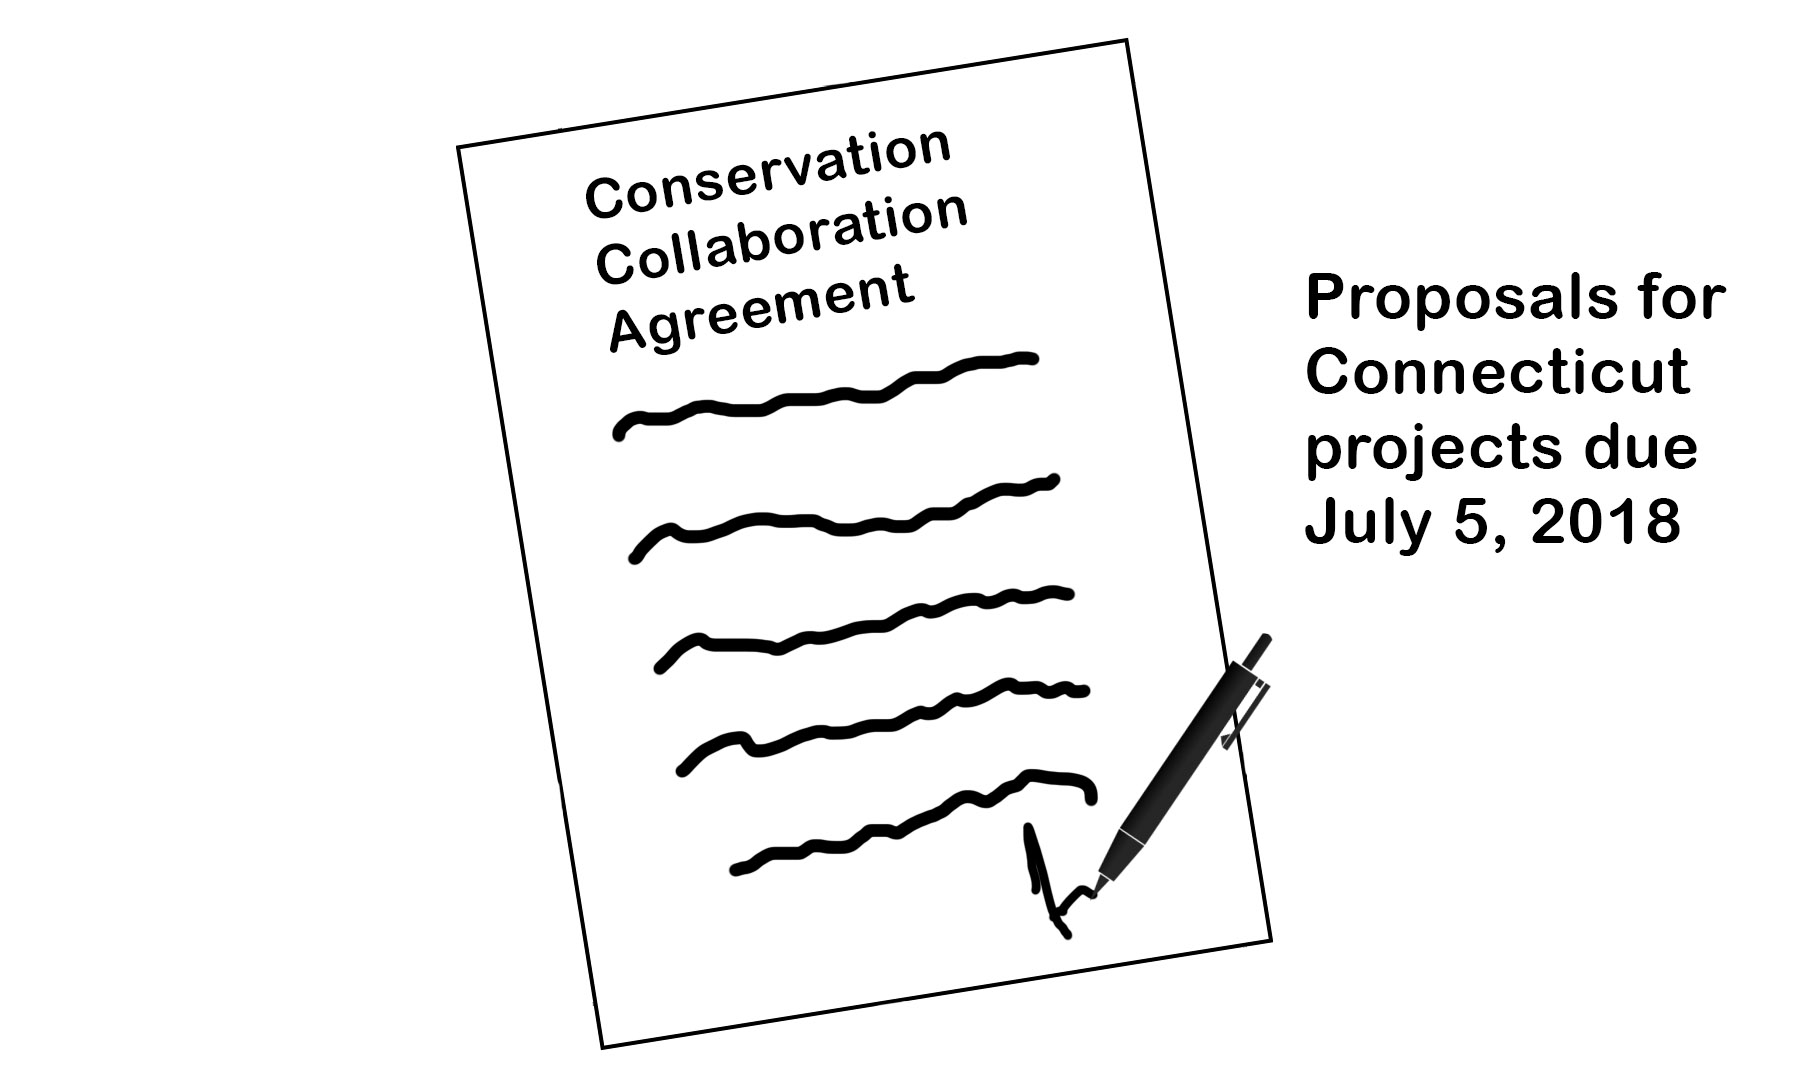 Clipart - paper with pen signing Conservation Collaboration Agreement